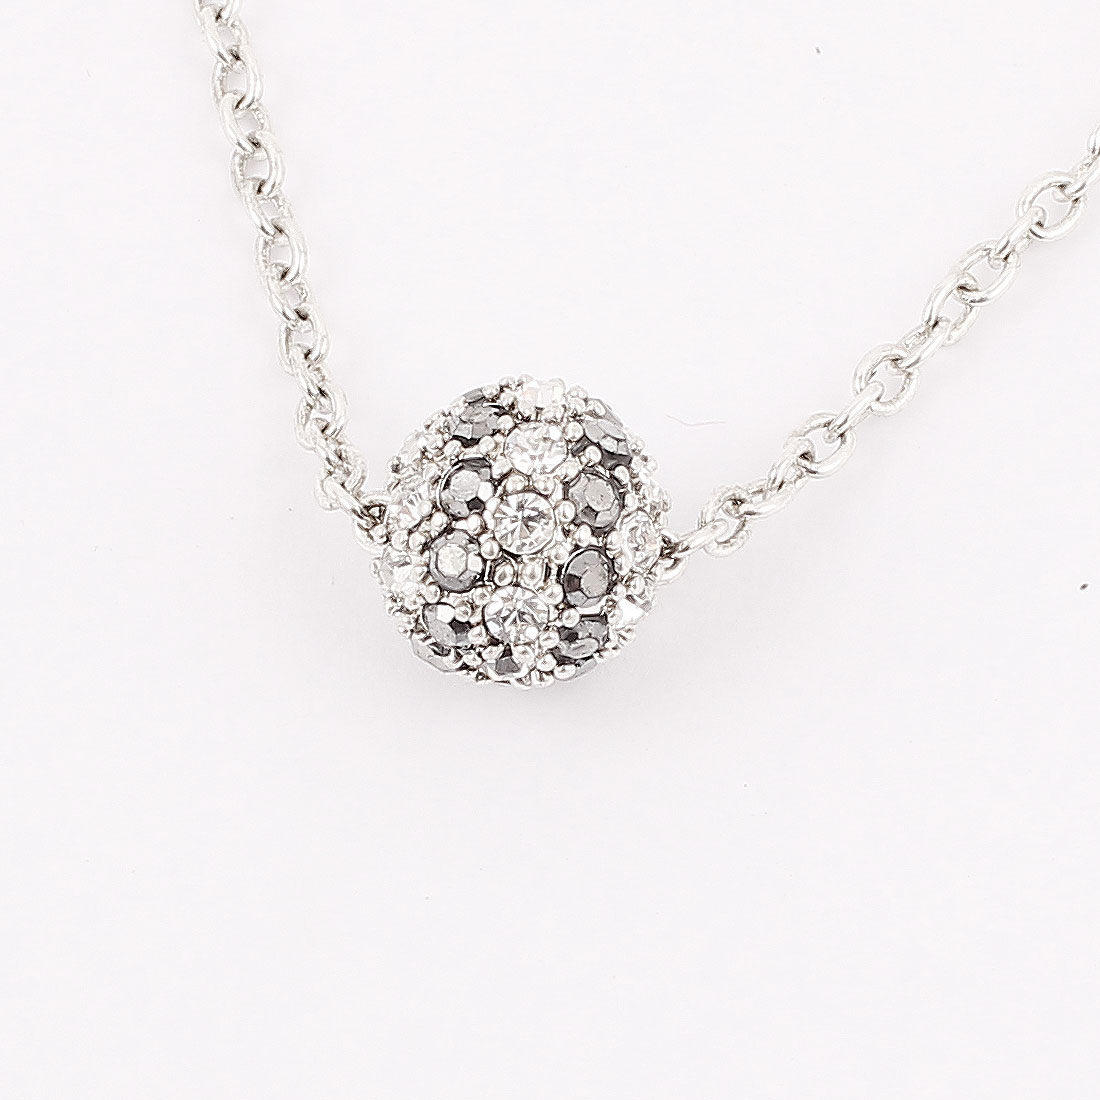 Ladies Women Plastic Crystals Inlaided Ball Detail Pendant Metal Lobster Buckle Strip Link Slim Chain Necklace Neckwear Silver Tone